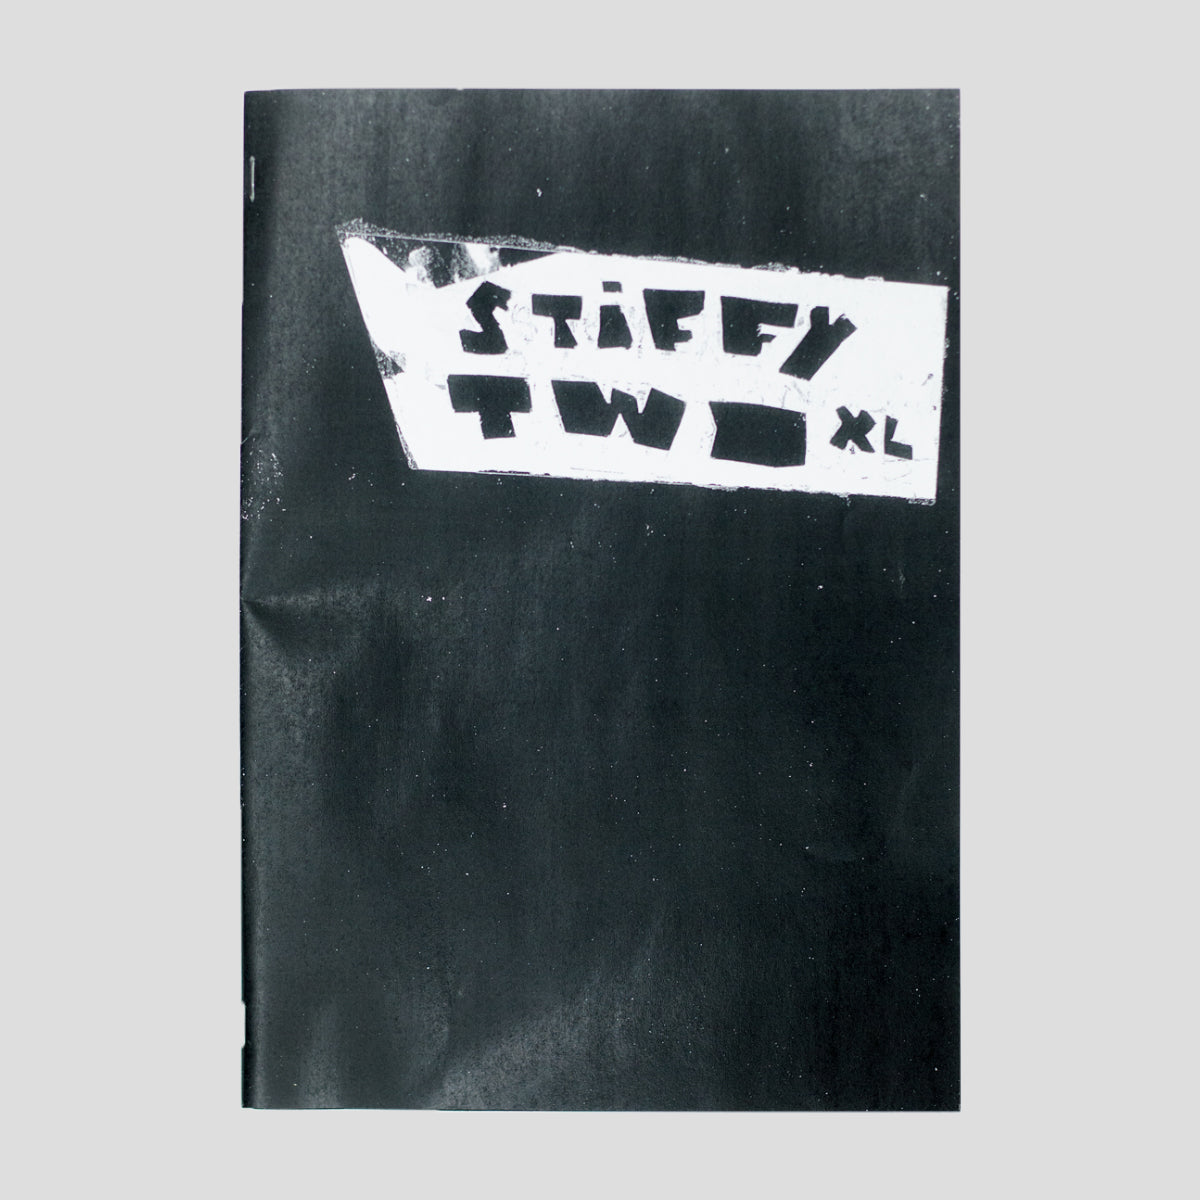 STIFFY TWO ZINE